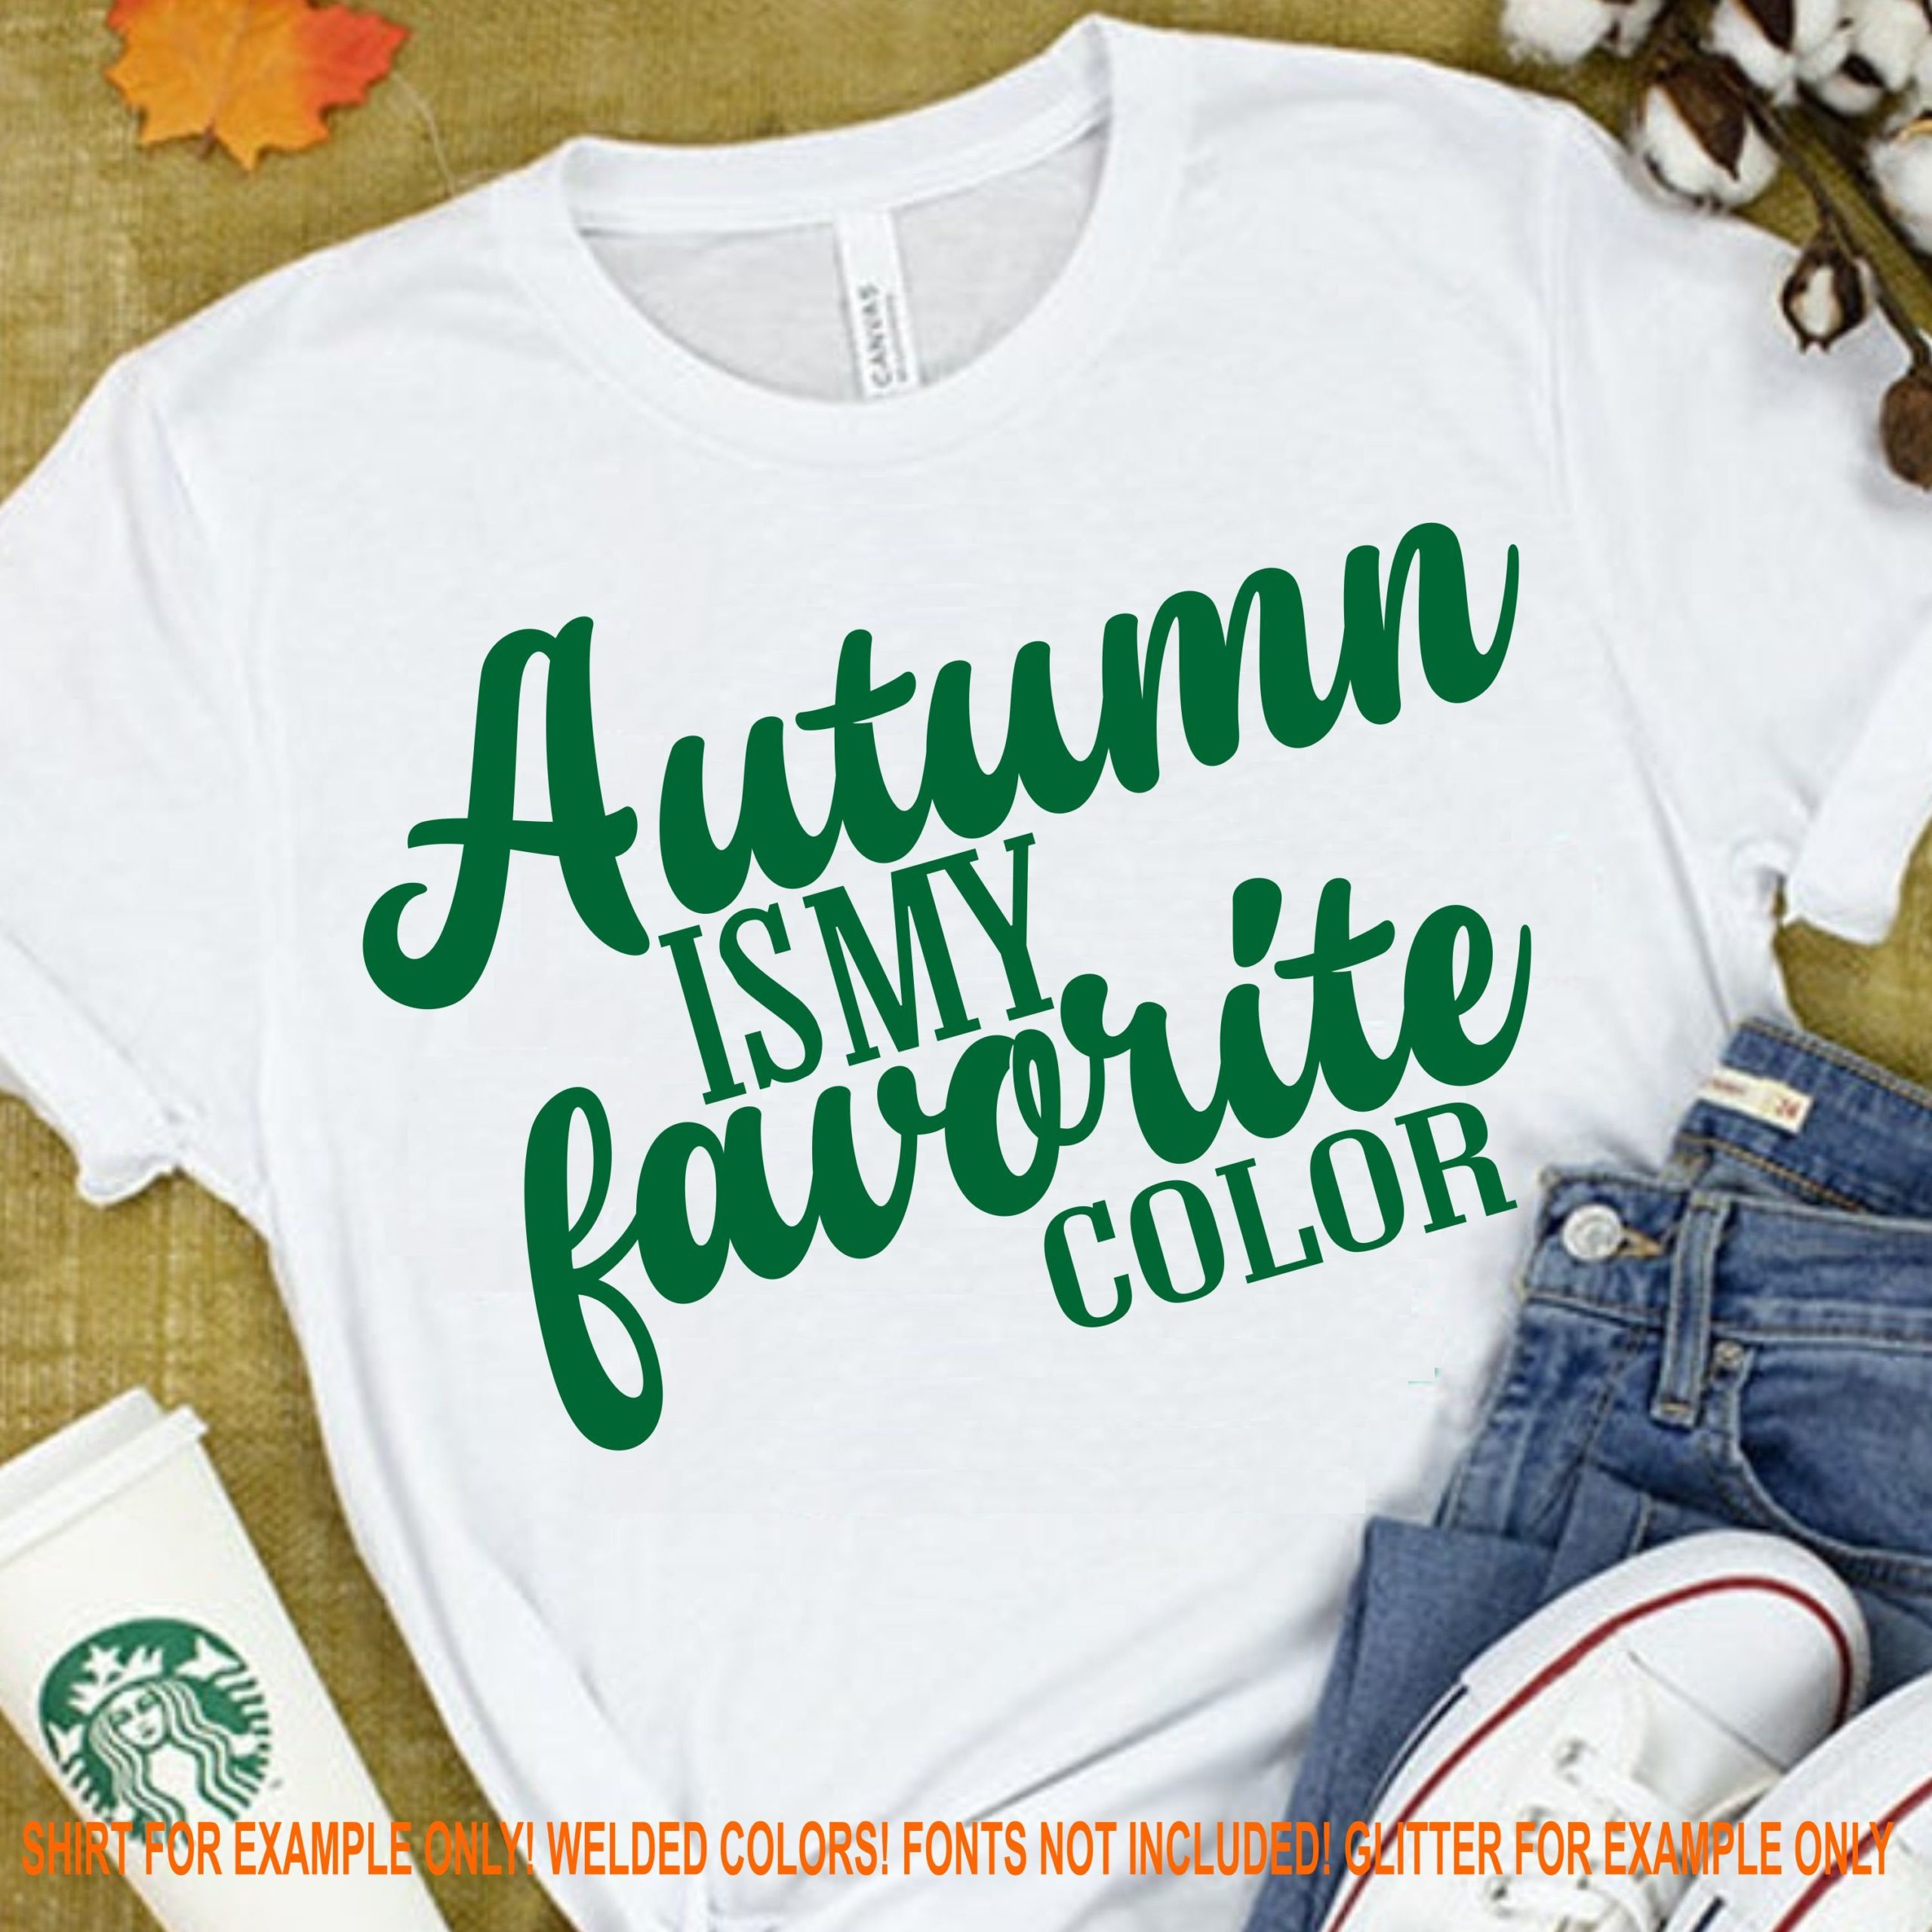 Autumn-is-my-favorite-color-svg-fall-svg-fall-quote-seasons-fall-saying-fall-svg-designs-fall-cut-files-cricut-cut-files-5f7218c7